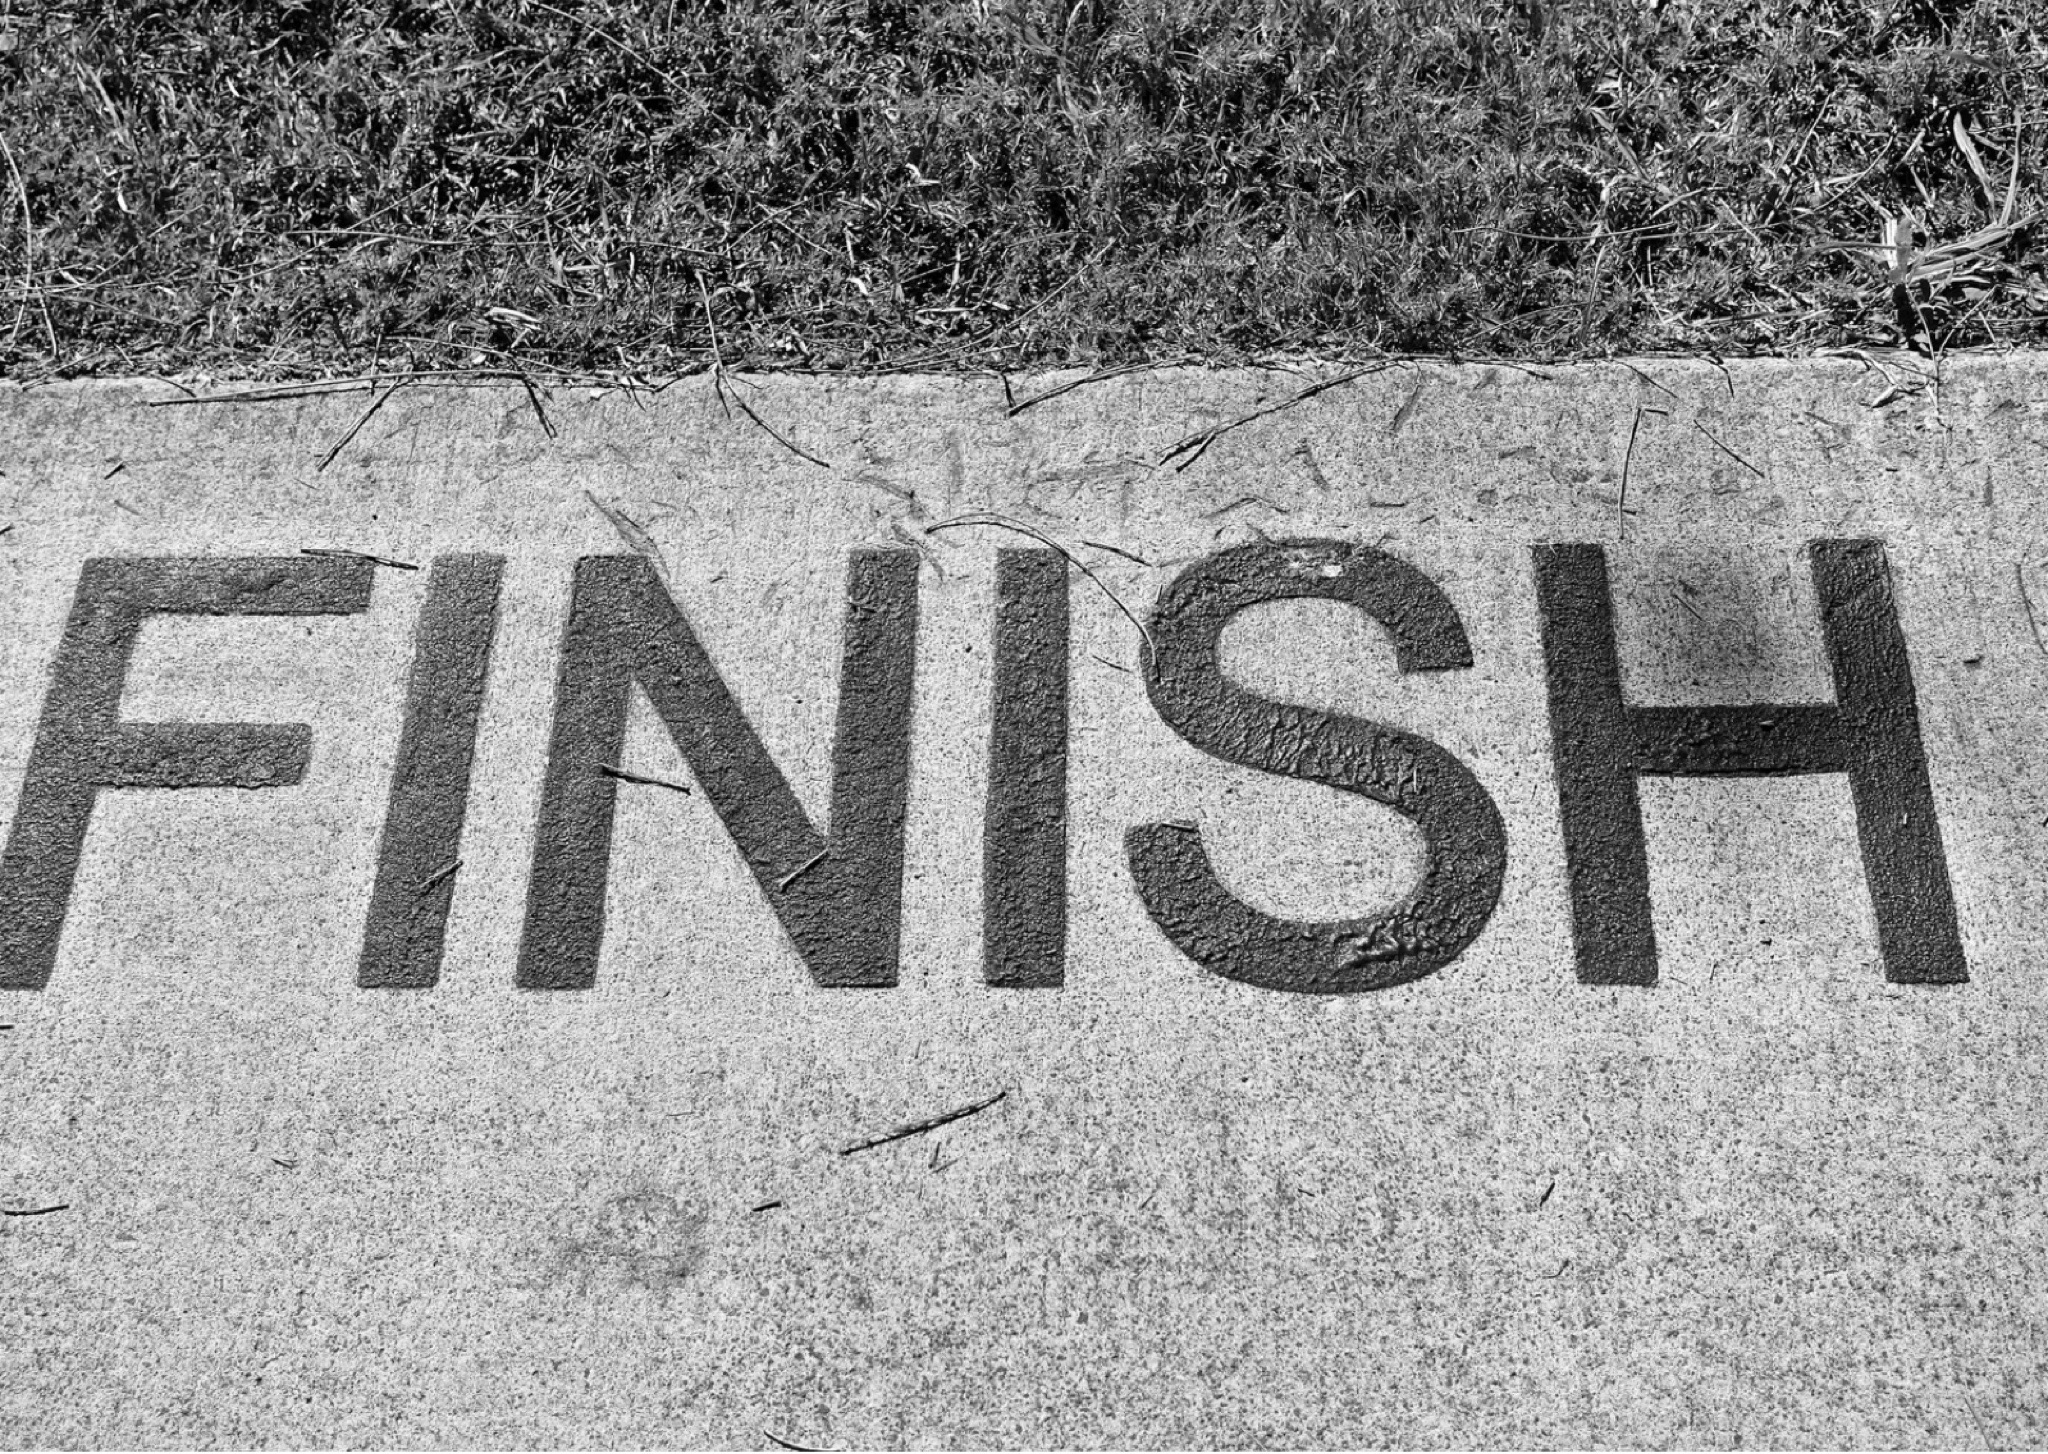 The Year of Fulfillment: Time to Finish What You've Started